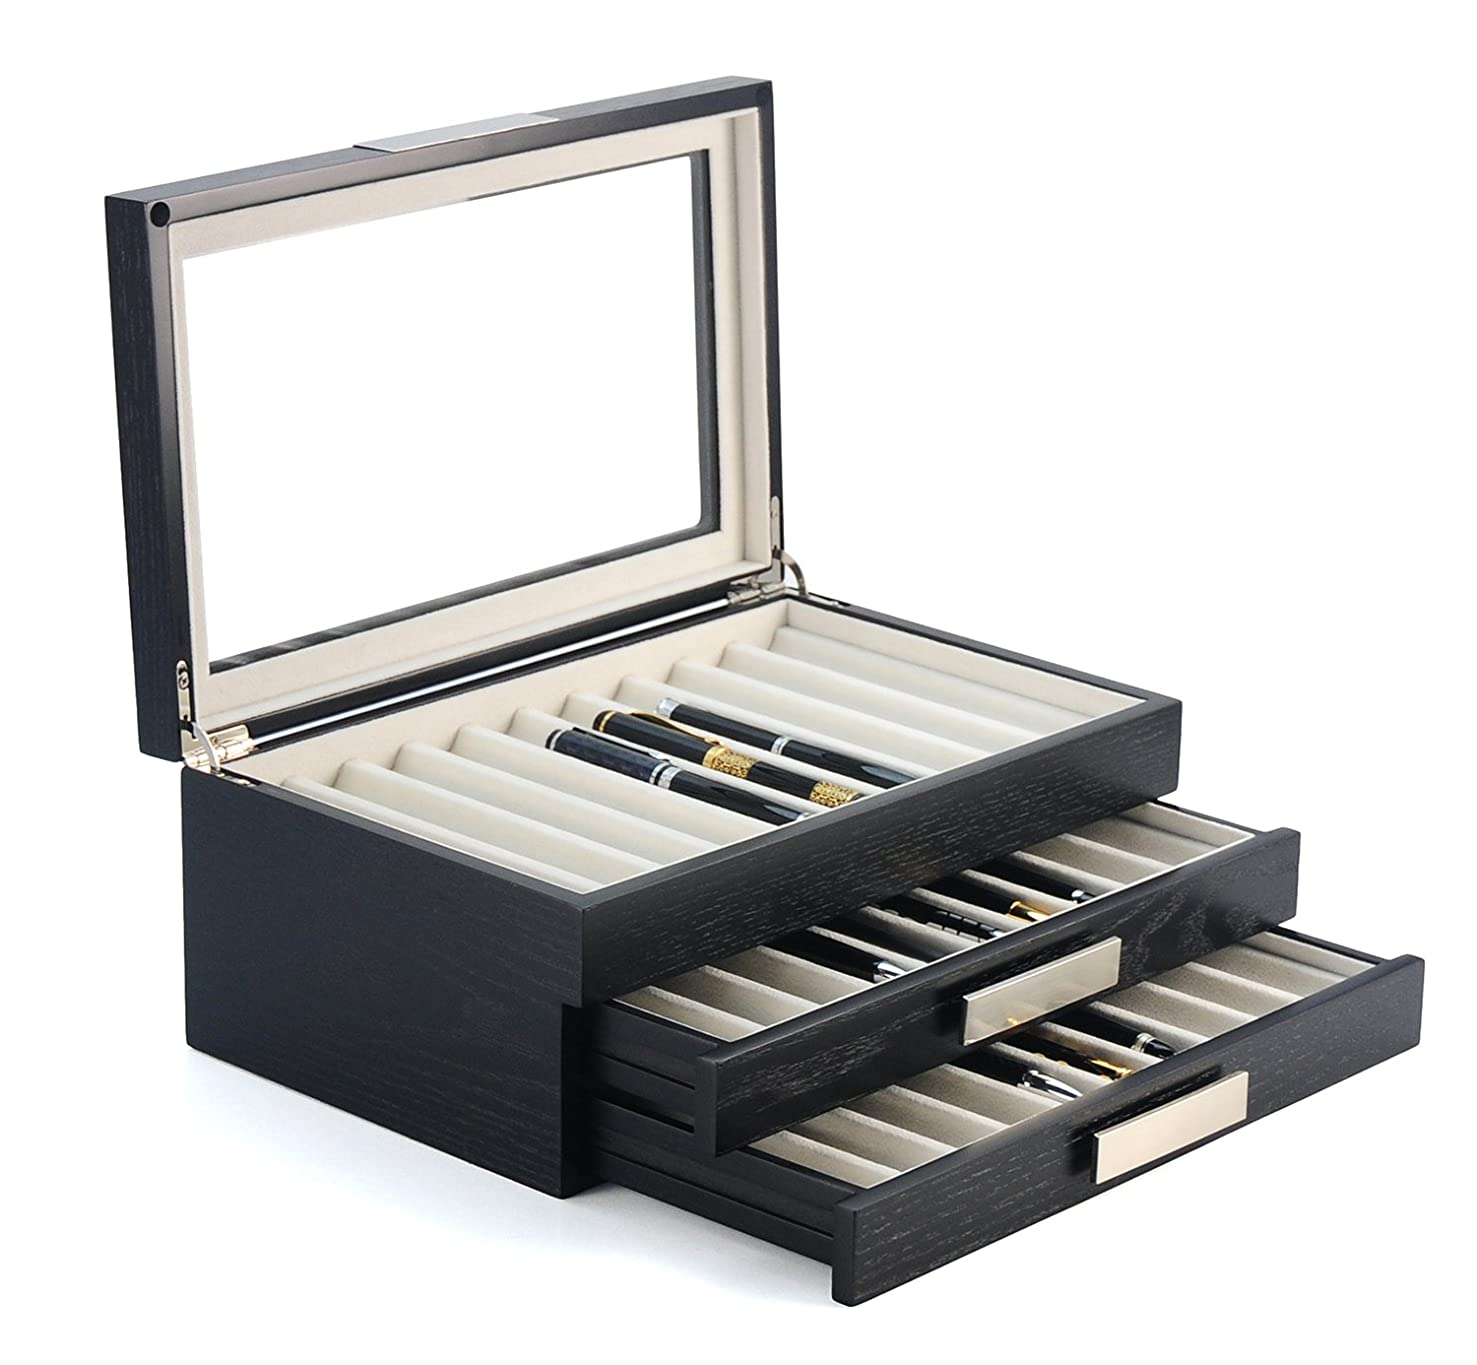 30 Piece Black Ebony Wood Pen Display Case Storage and Fountain Pen Collector Organizer Box with Glass Window Three Level Display Case with Drawers